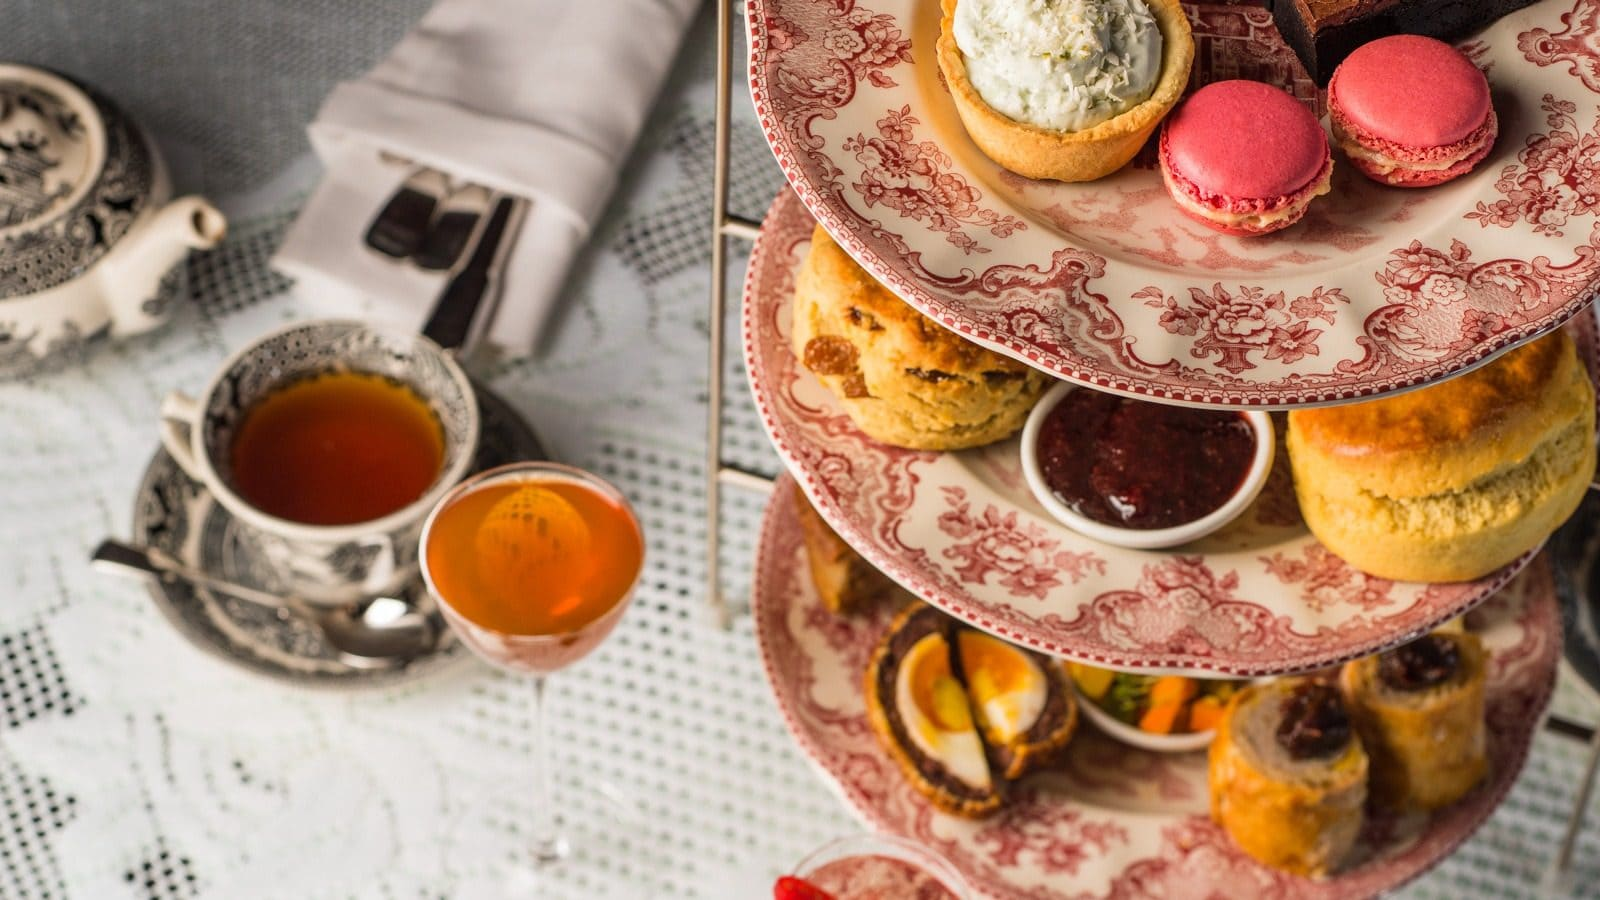 Afternoon tea at the Zetter Townhouse for Mother's Day